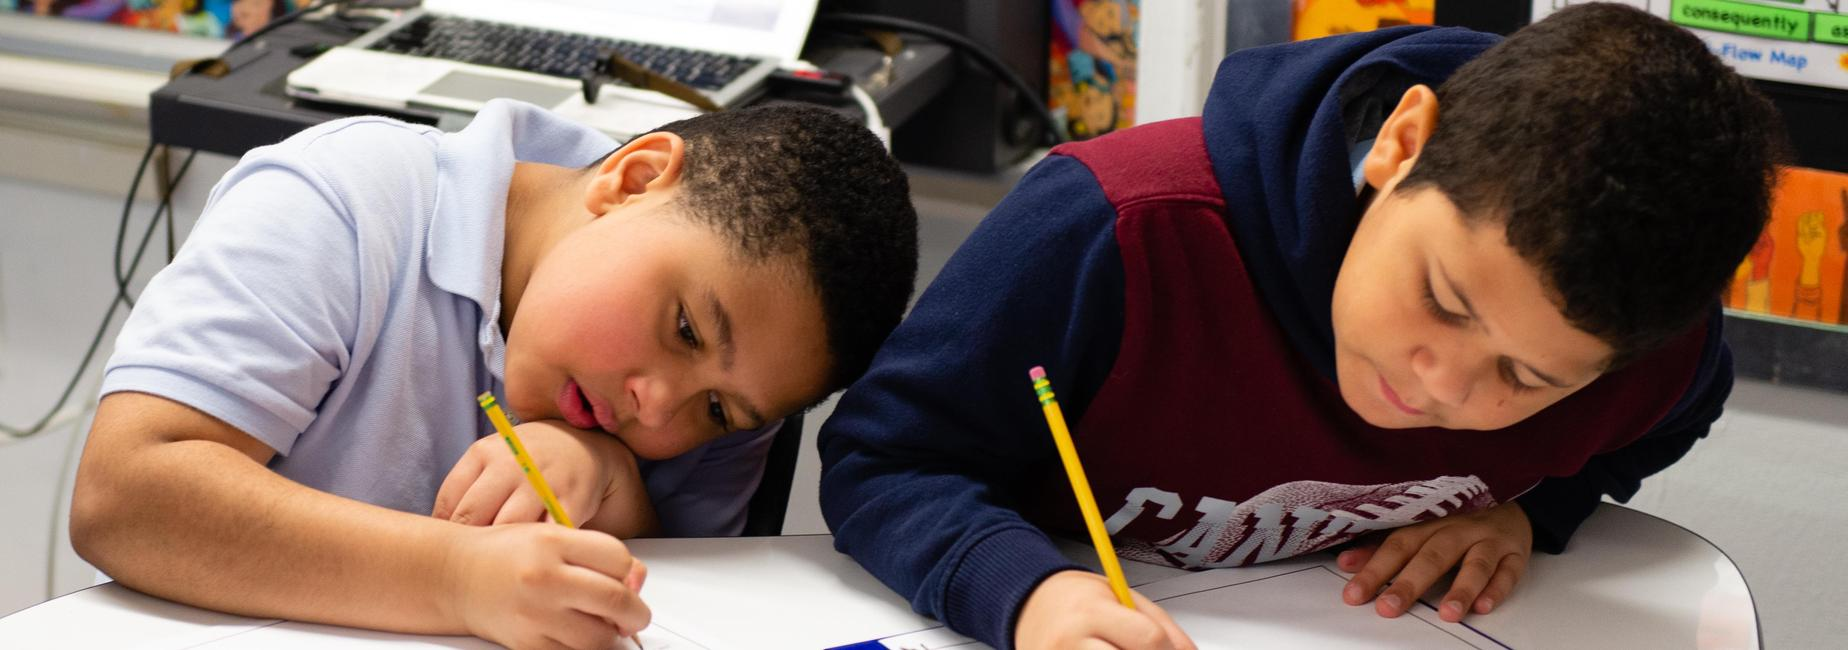 Two elementary school students leaning against a table and writing.